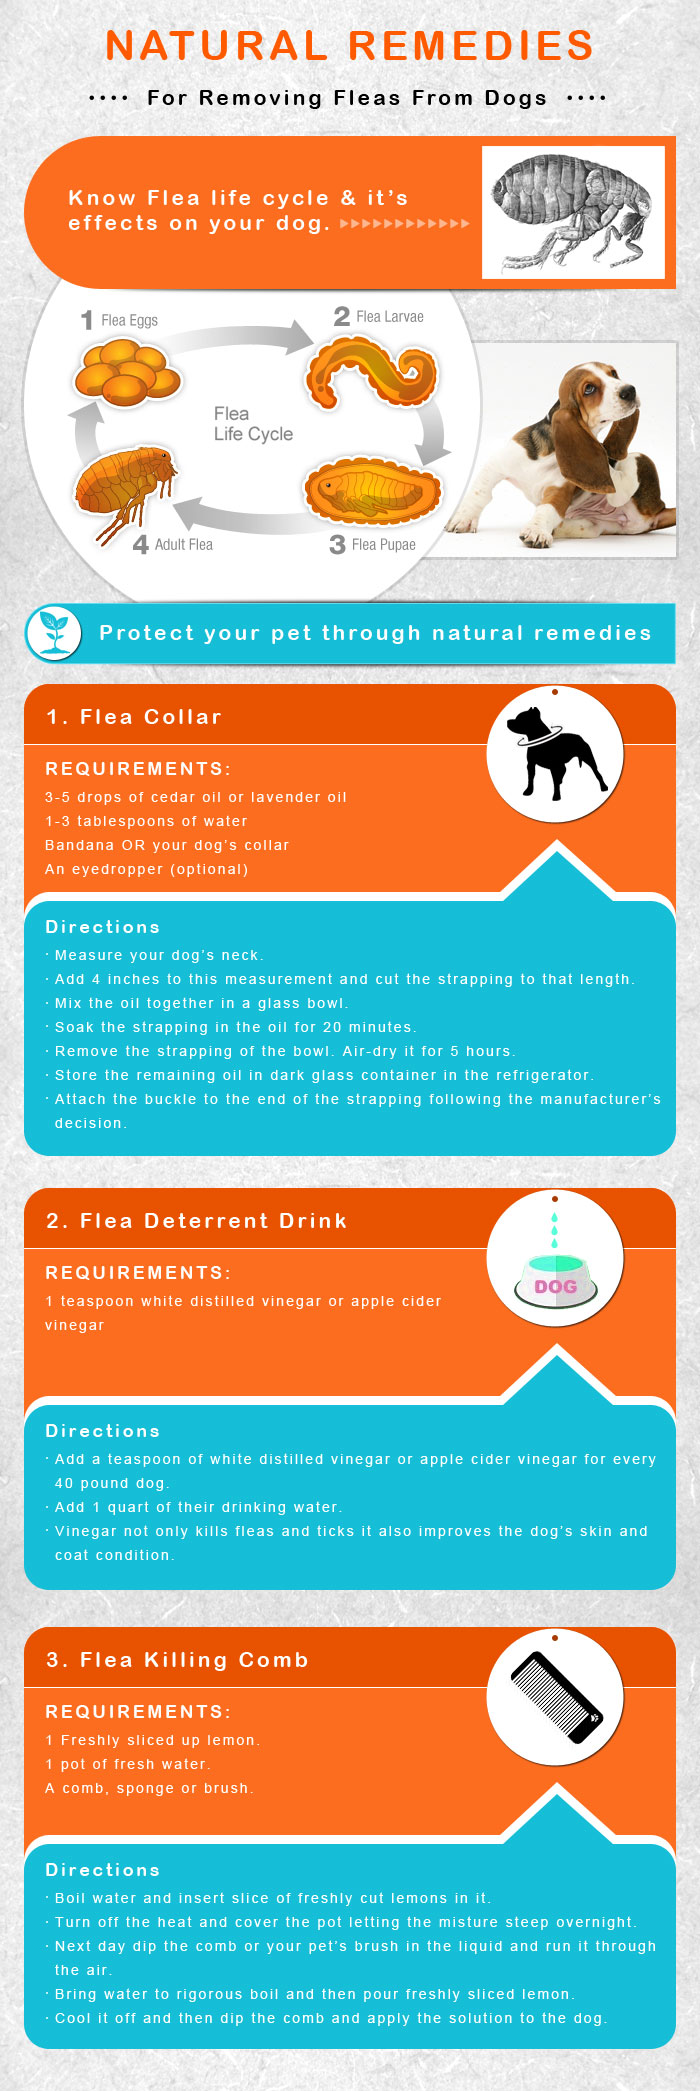 Flea & Tick Control and Prevention Products for Dogs